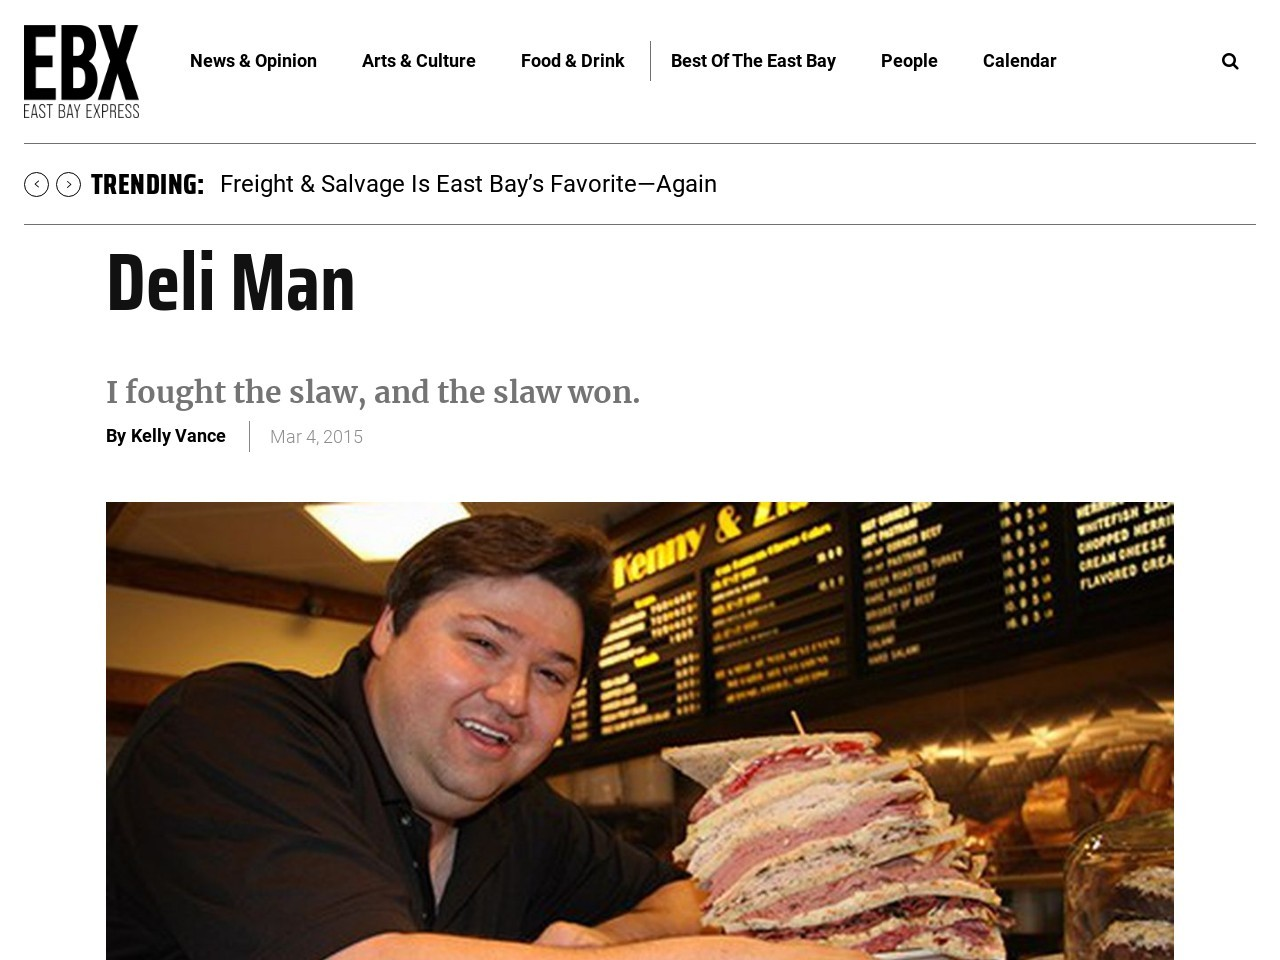 Movie Review: Deli Man | East Bay Express